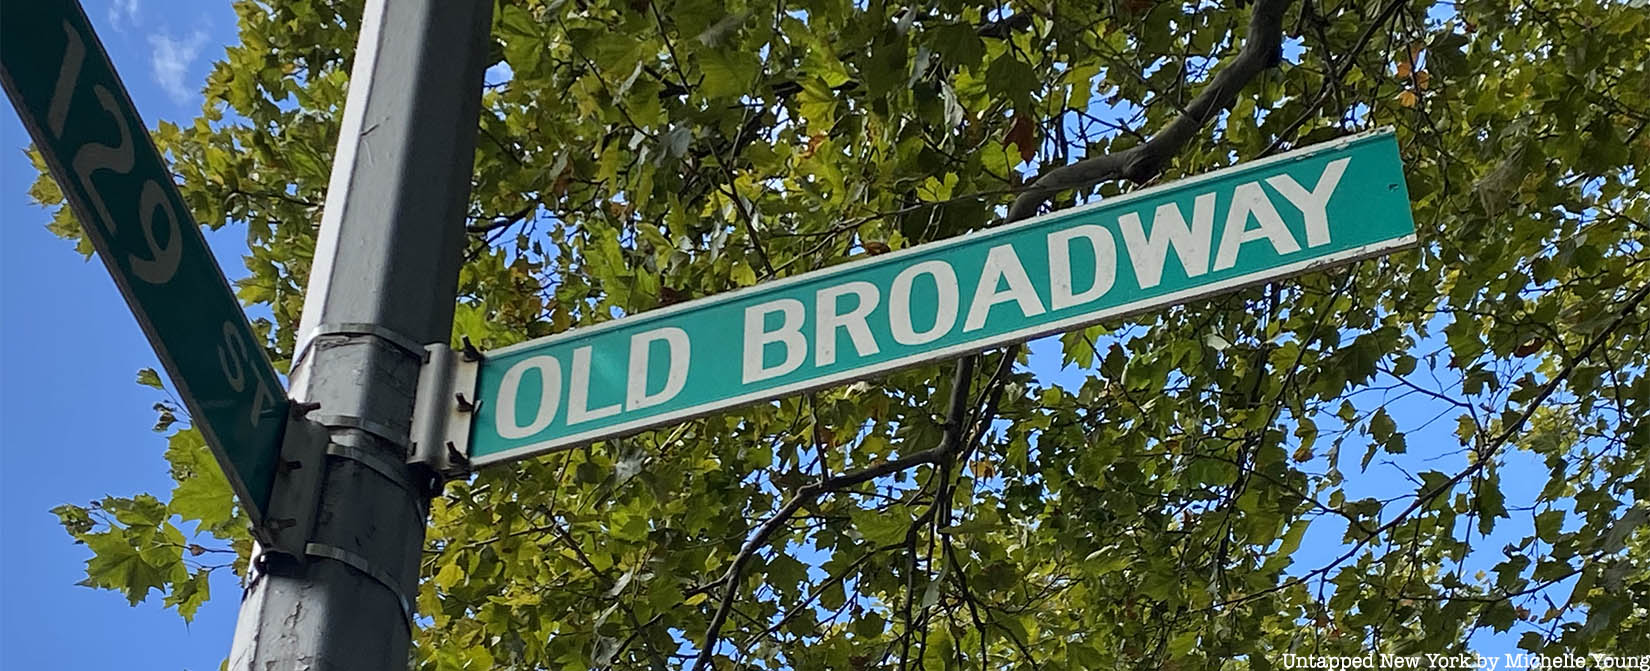 Old Broadway street sign